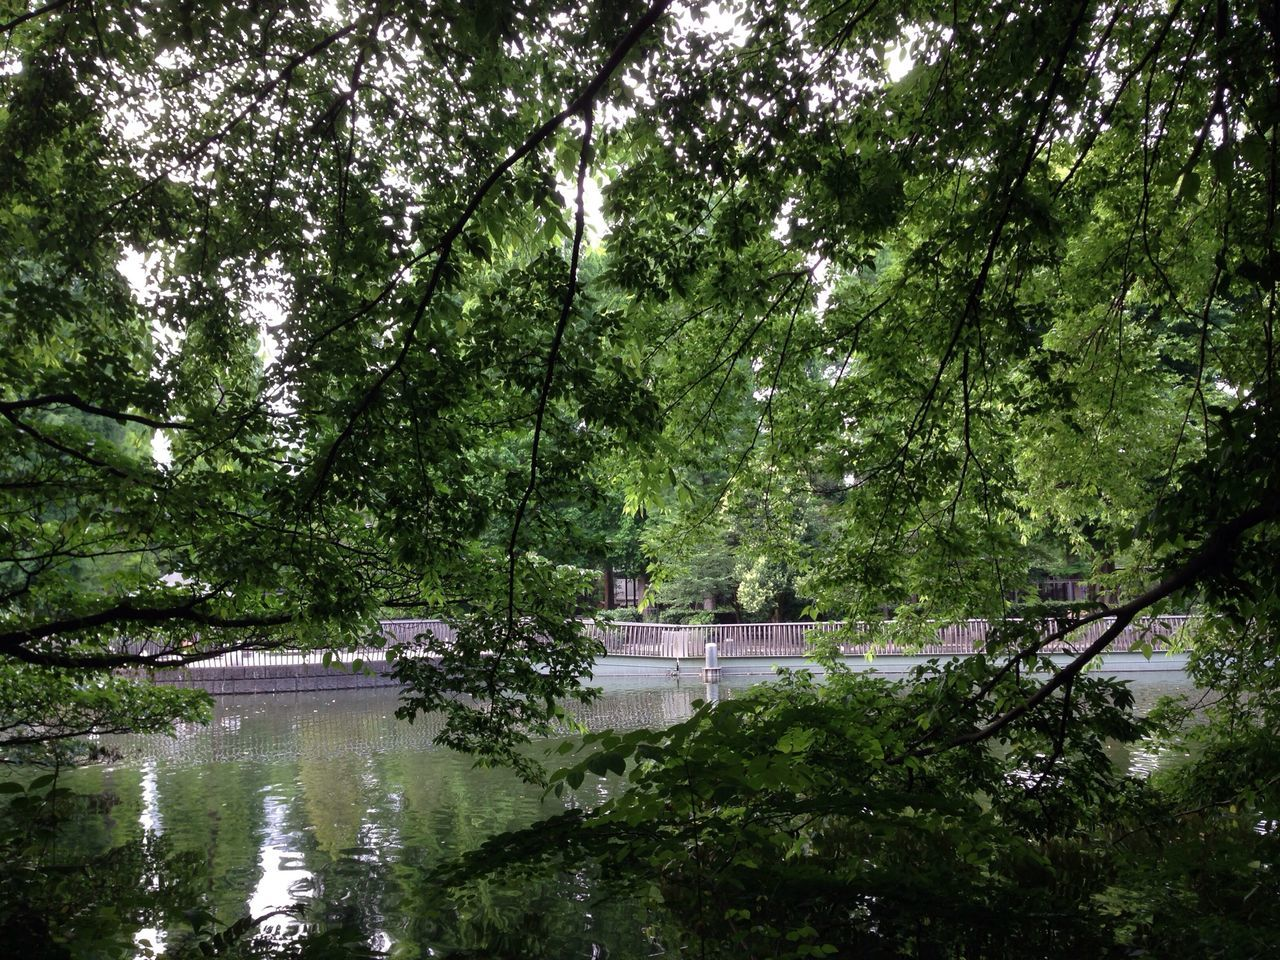 View of trees and pond in park